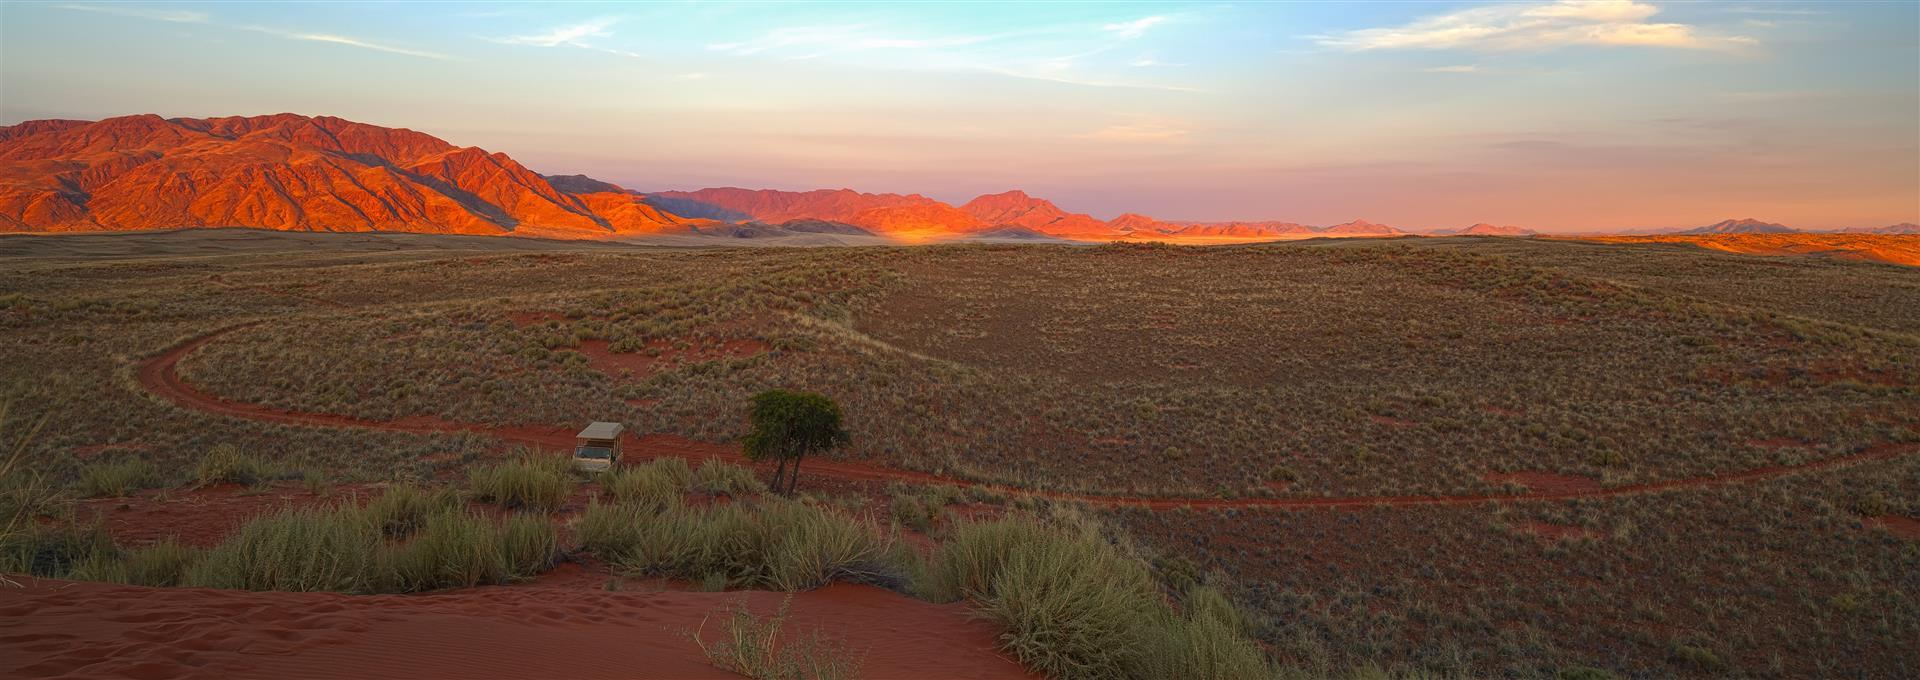 sunset view of Namibia's wilderness